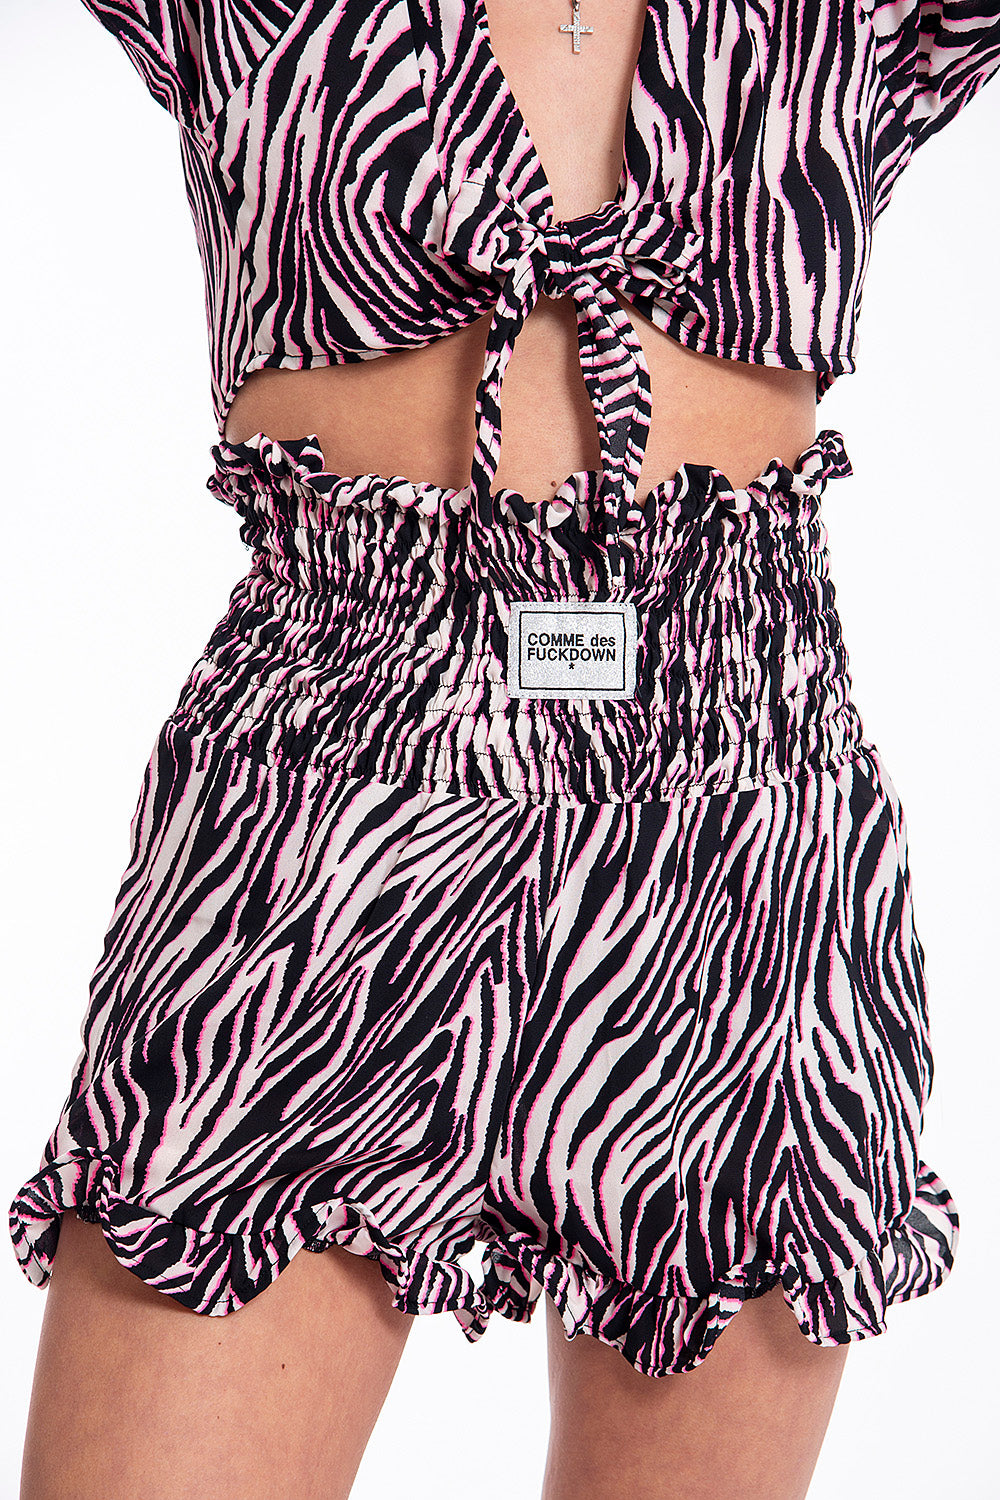 Comme des Fuckdown pink zebra shorts with elasticated waist